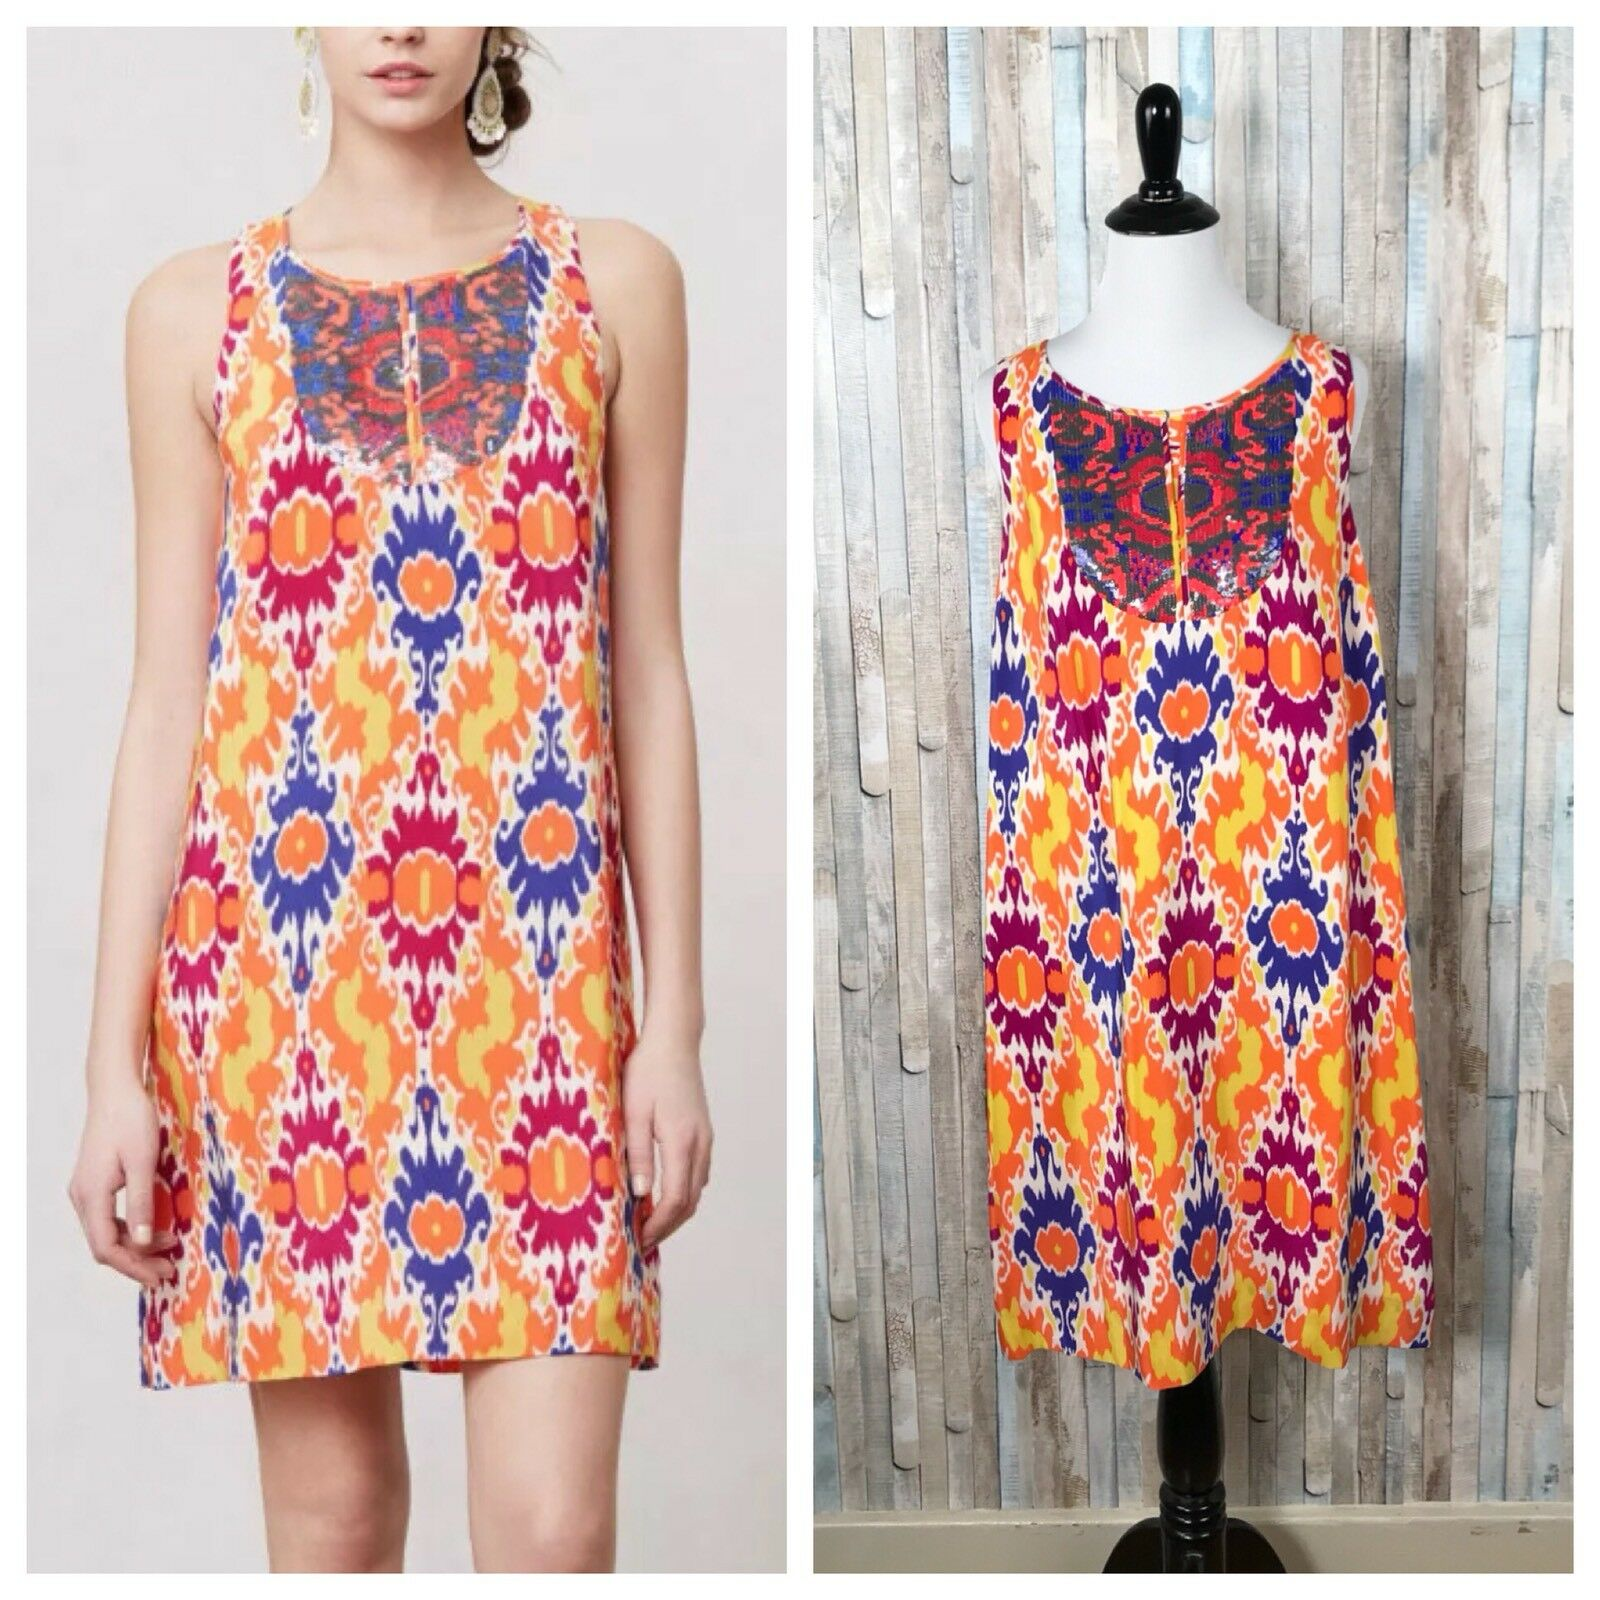 Anthropologie 8 Floreat Farbeé 100% soie orné de sequins Kaléidoscope Robe Shift